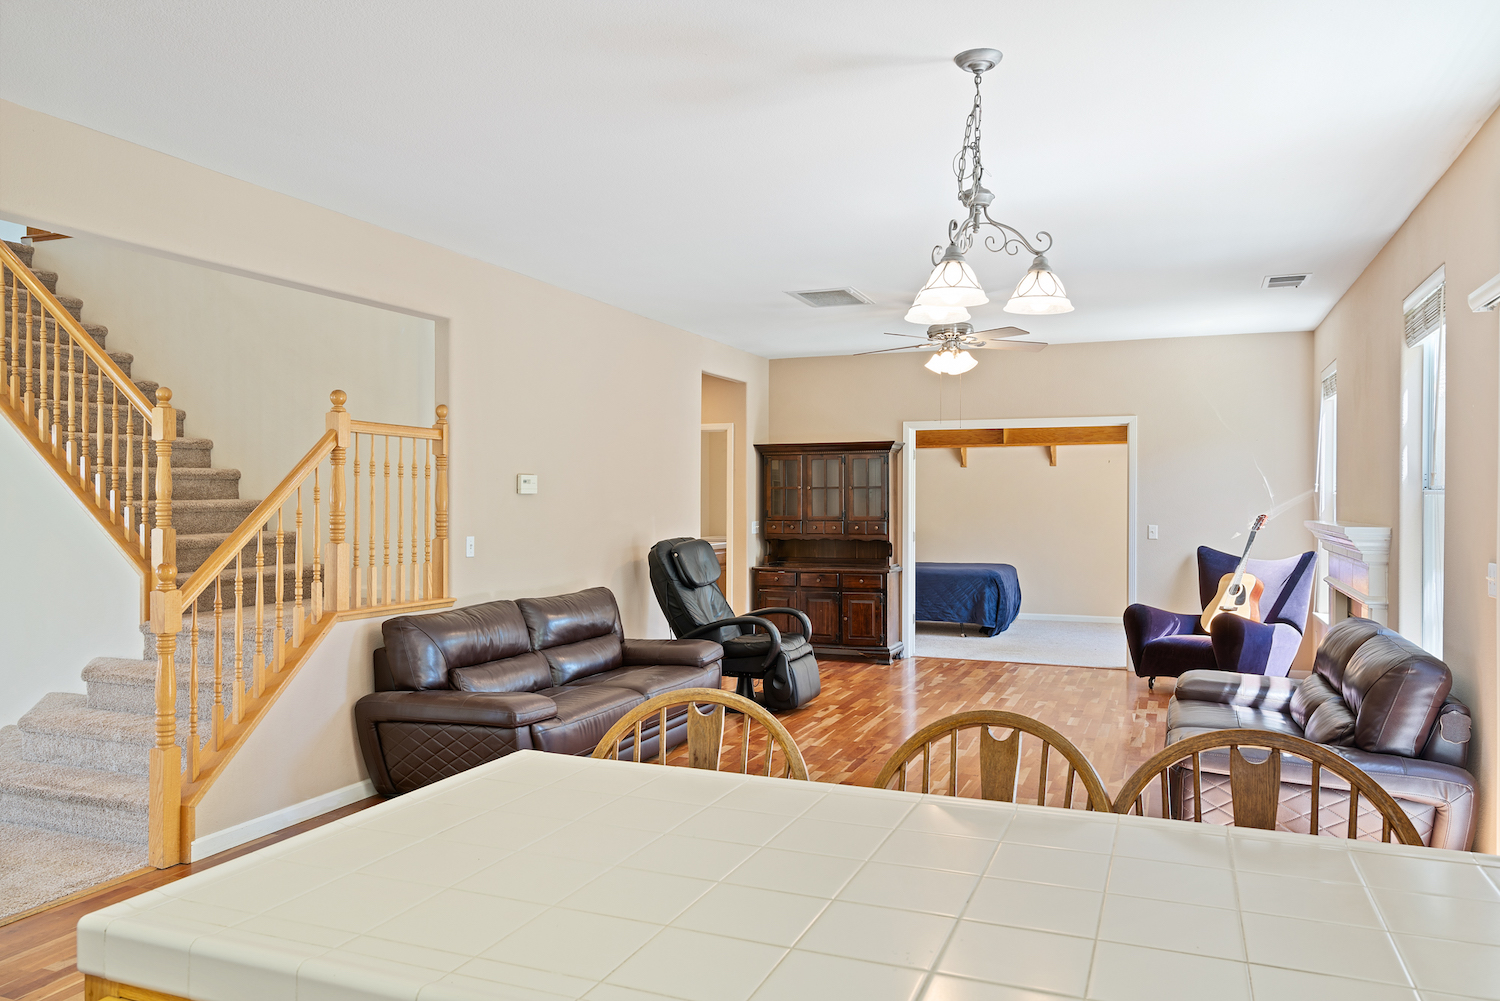 2241 glenview dr - view of living room from kitchen